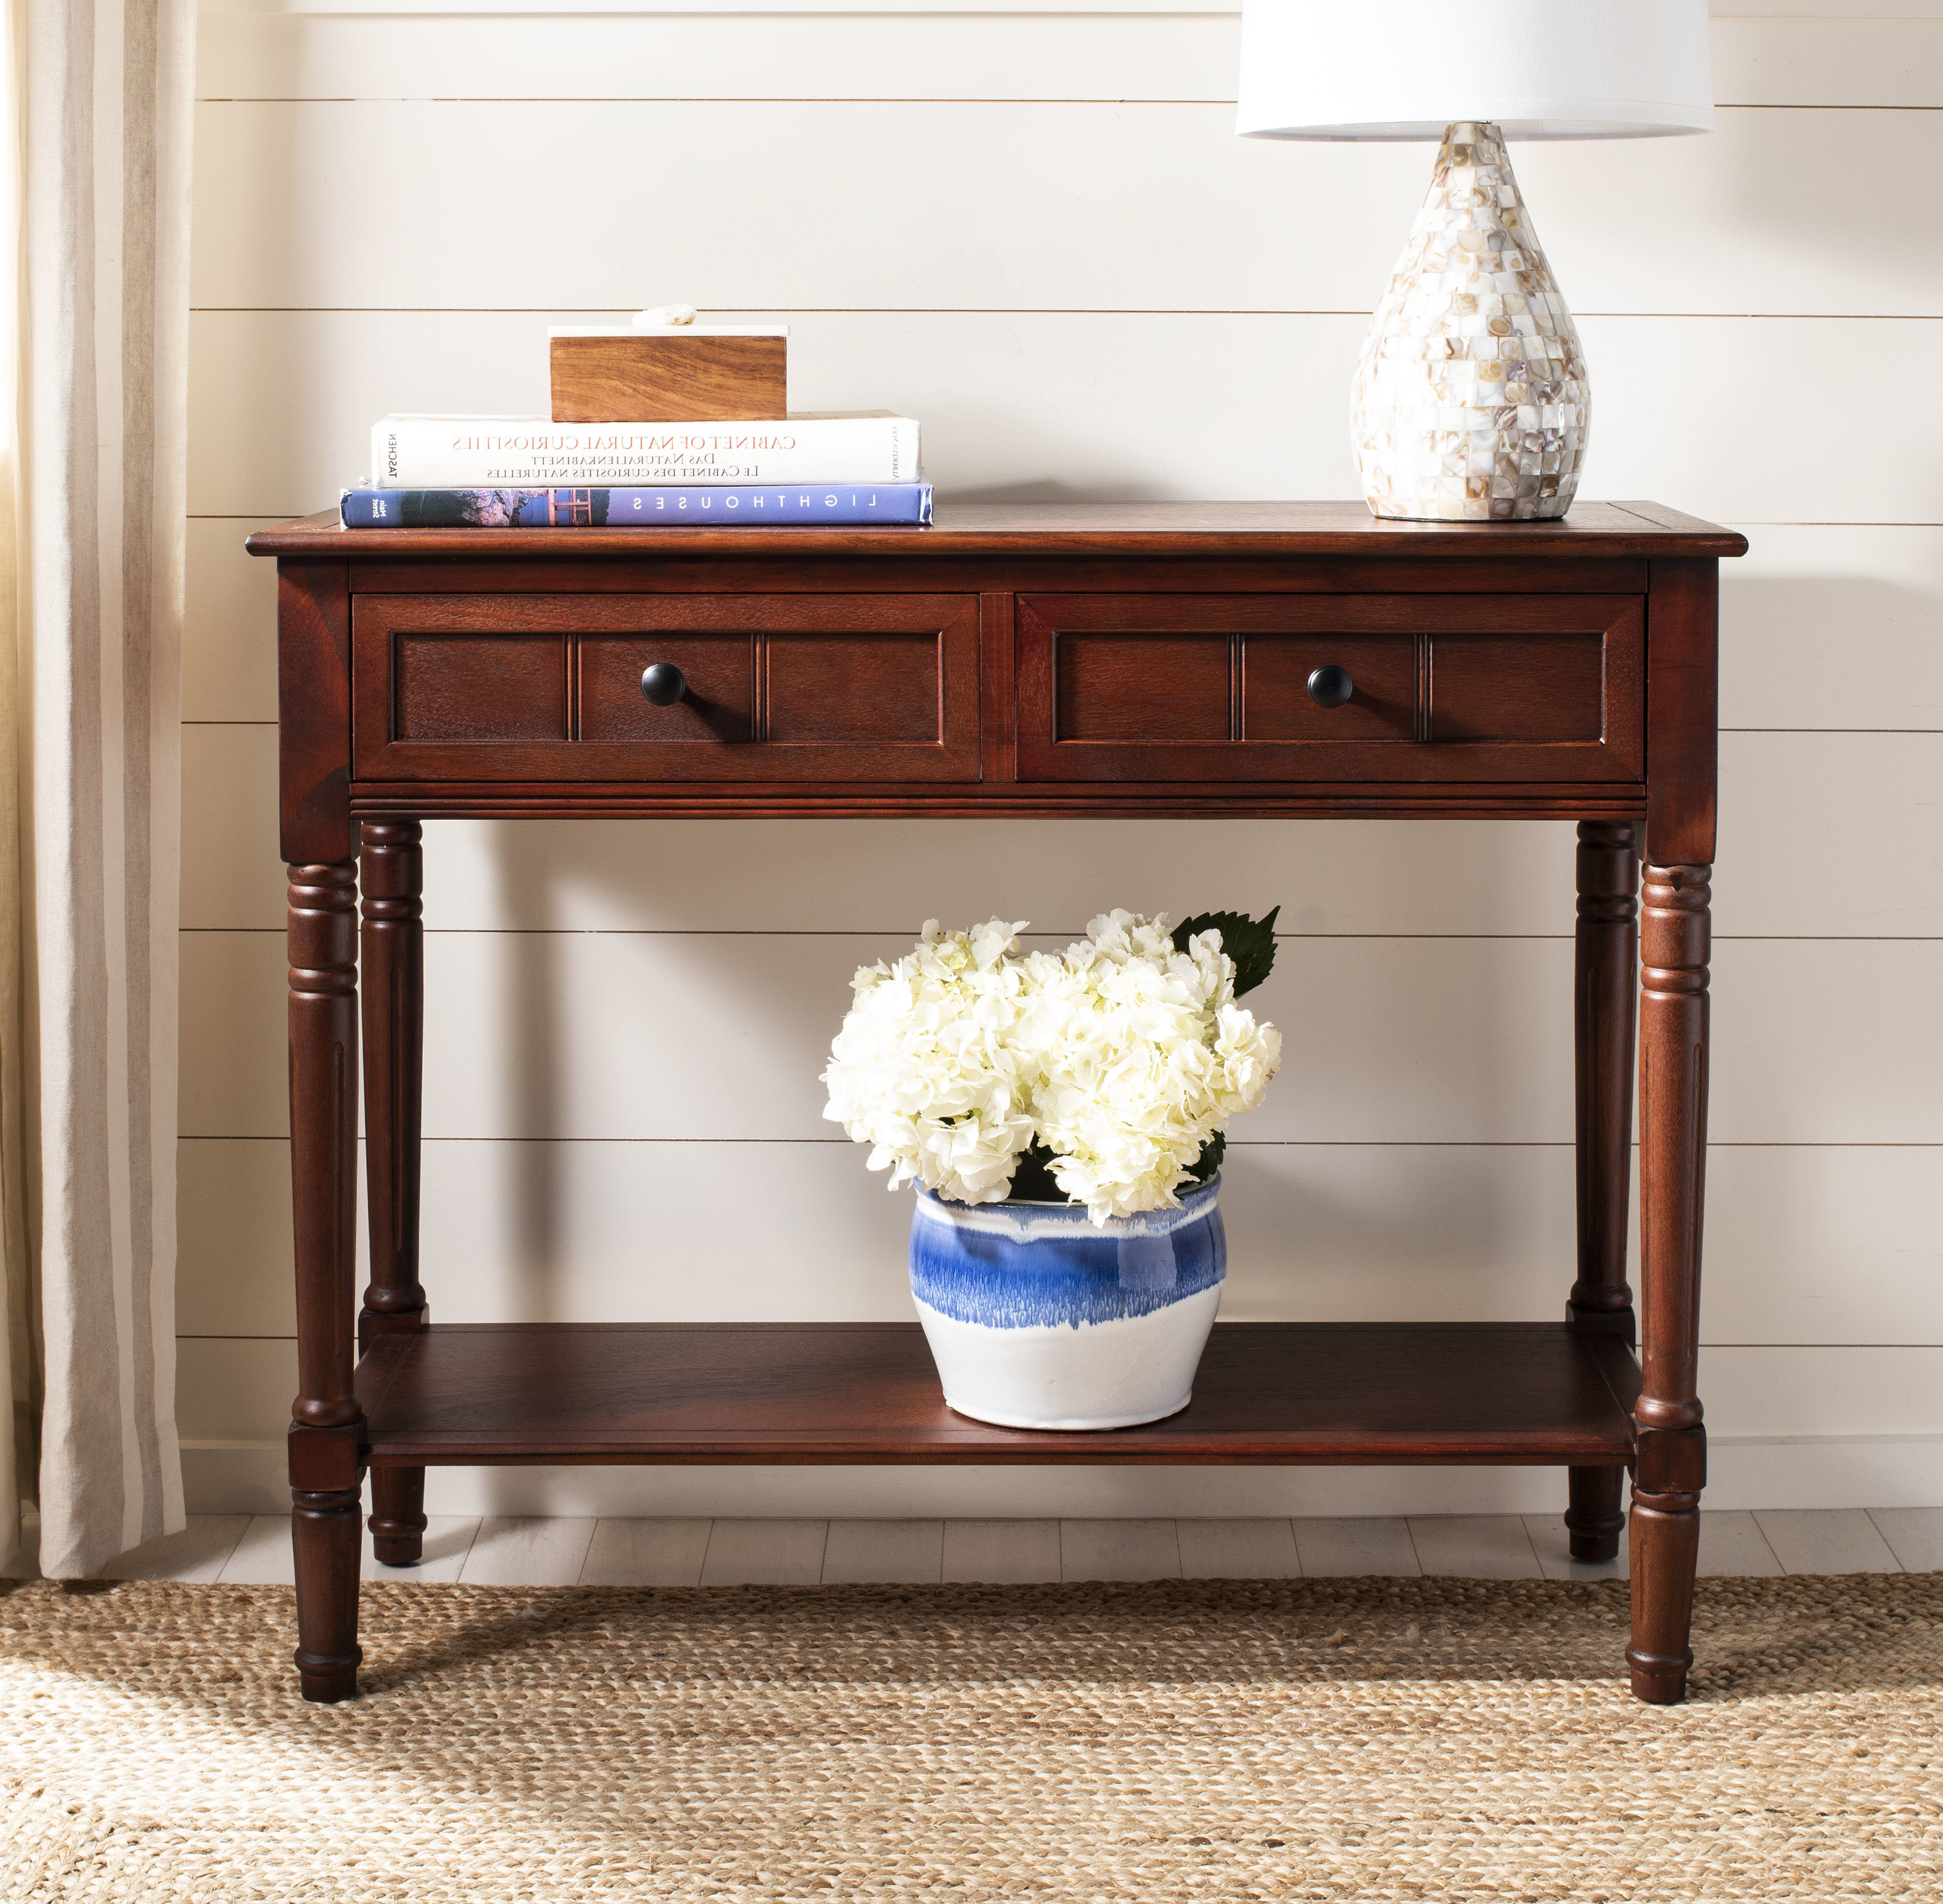 Console Table With 2 Shelves | Wayfair With Natural Wood Mirrored Media Console Tables (Gallery 15 of 20)